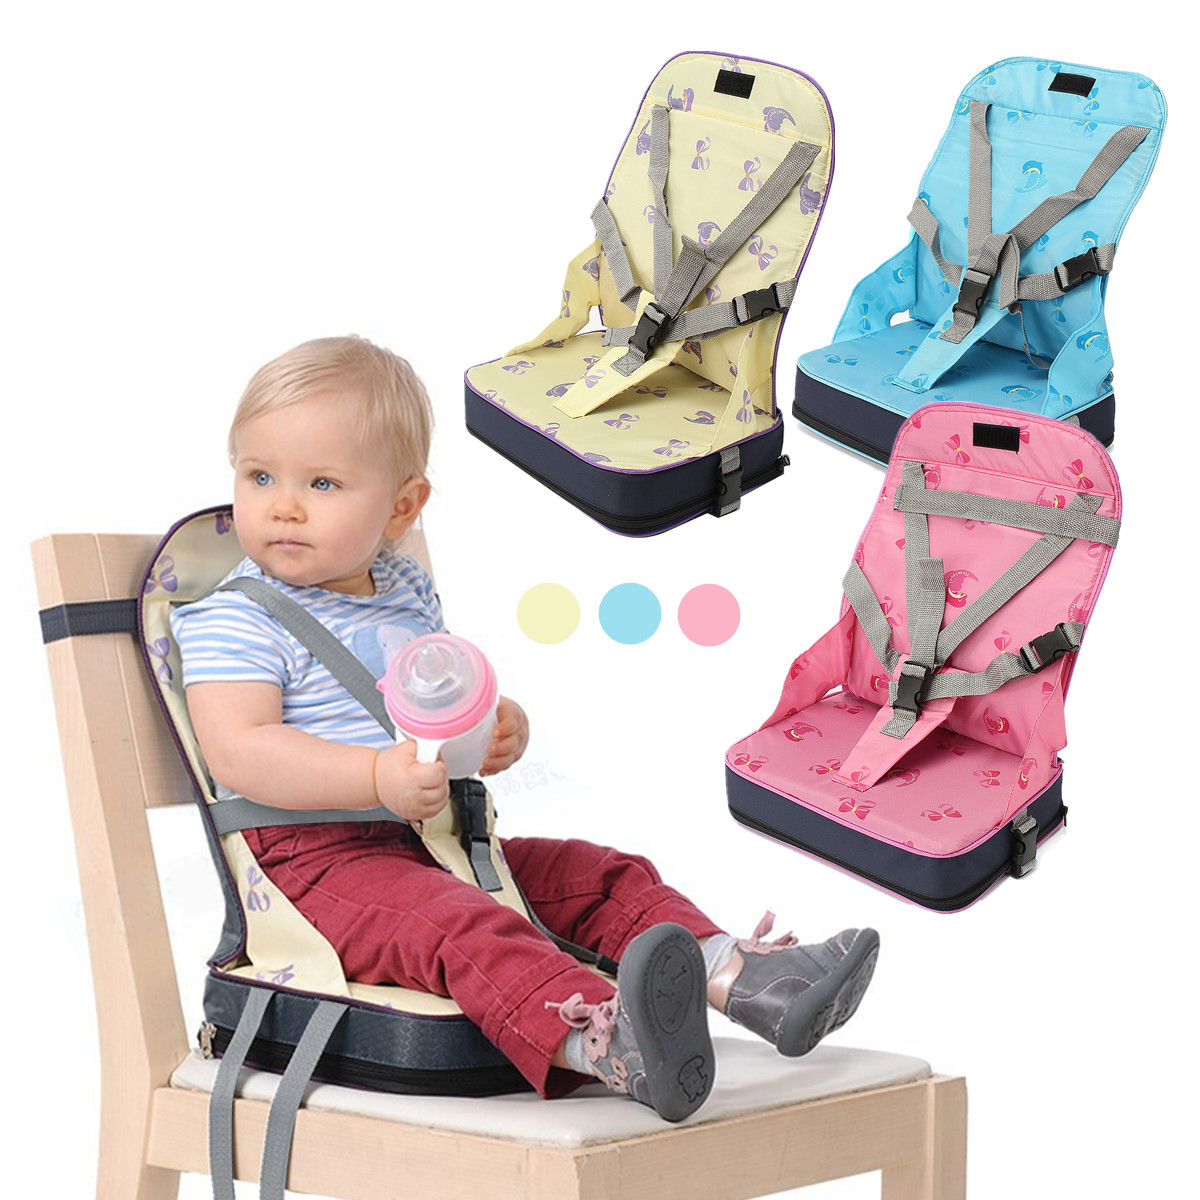 Toddler Foldable High Chair Booster Seat Dining Feeding Chair With Harness Safety Travel Dine Out Folding  sc 1 st  Walmart & Toddler Foldable High Chair Booster Seat Dining Feeding Chair With ...